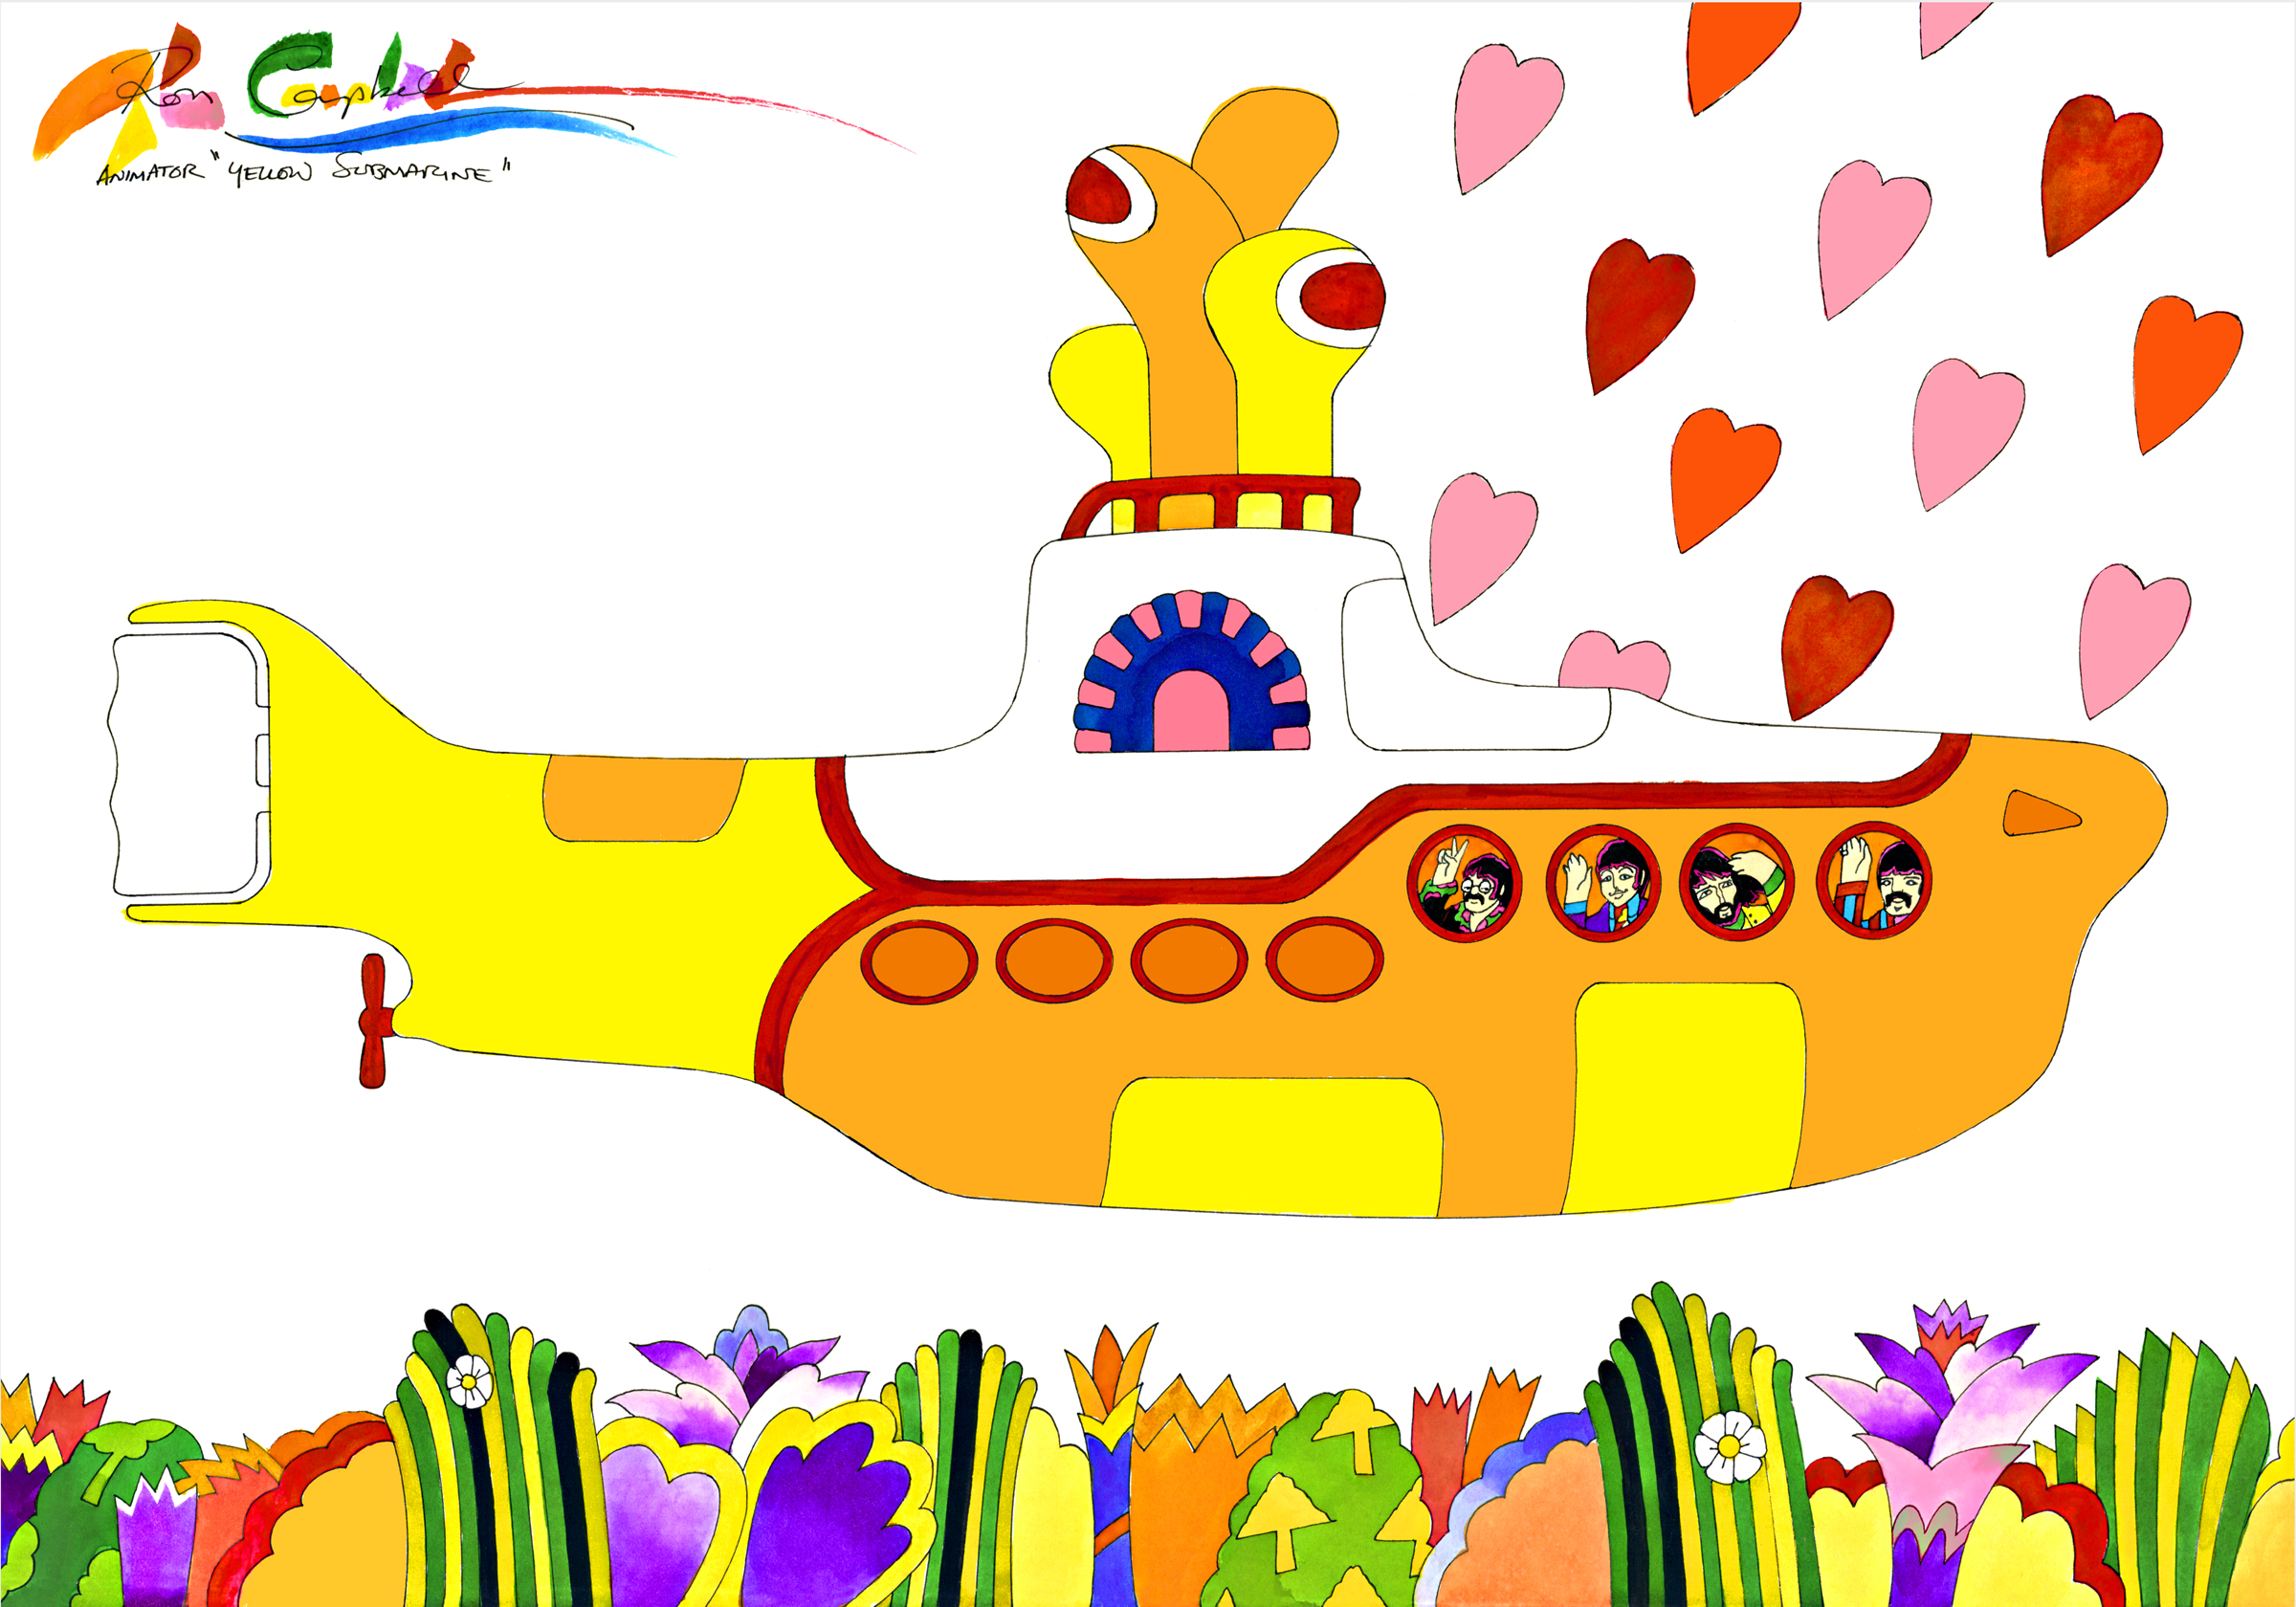 Beatles Yellow Submarine Animator Ron Campbell comes to The Modbo and S.P.Q.R.!